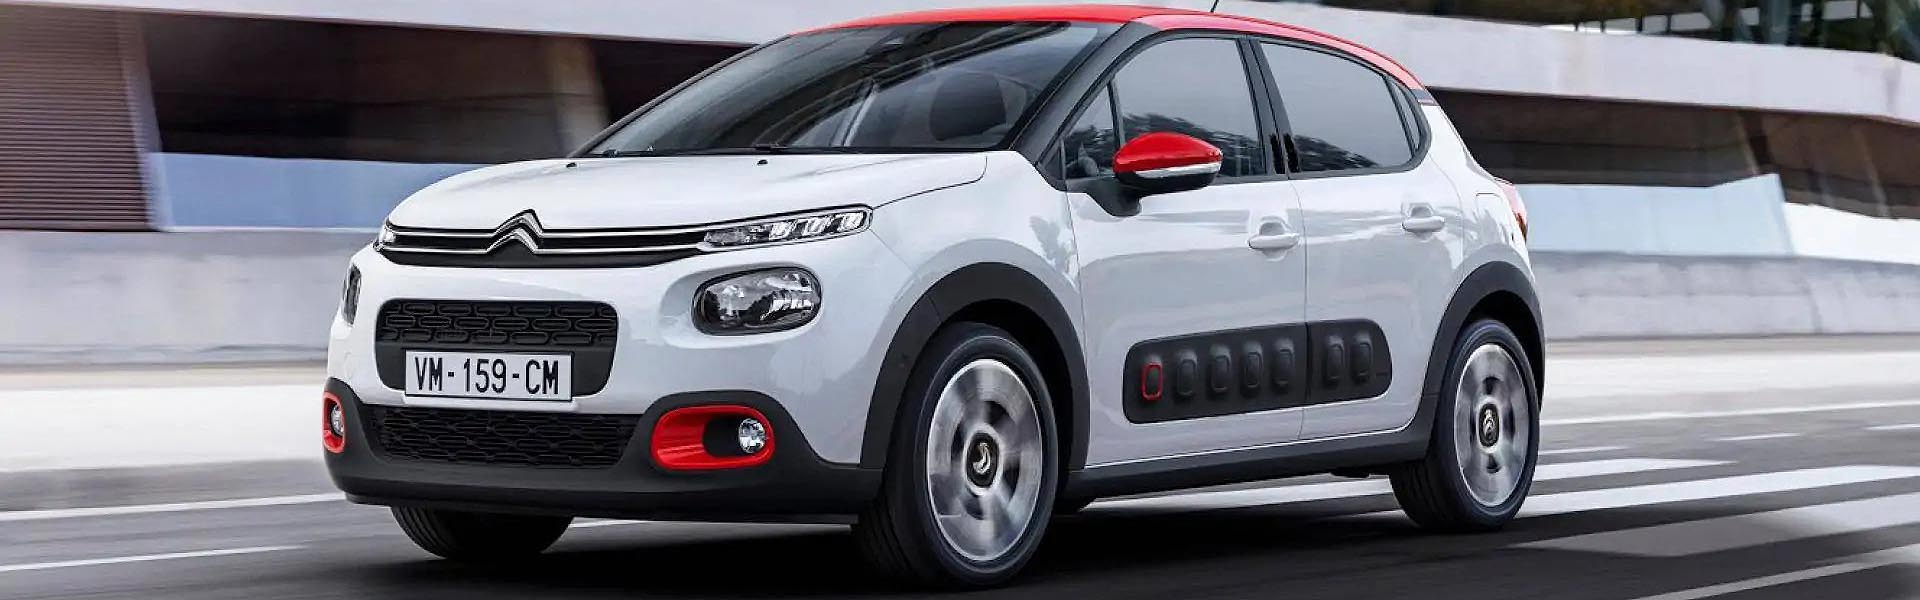 Citroen C3 Van Land